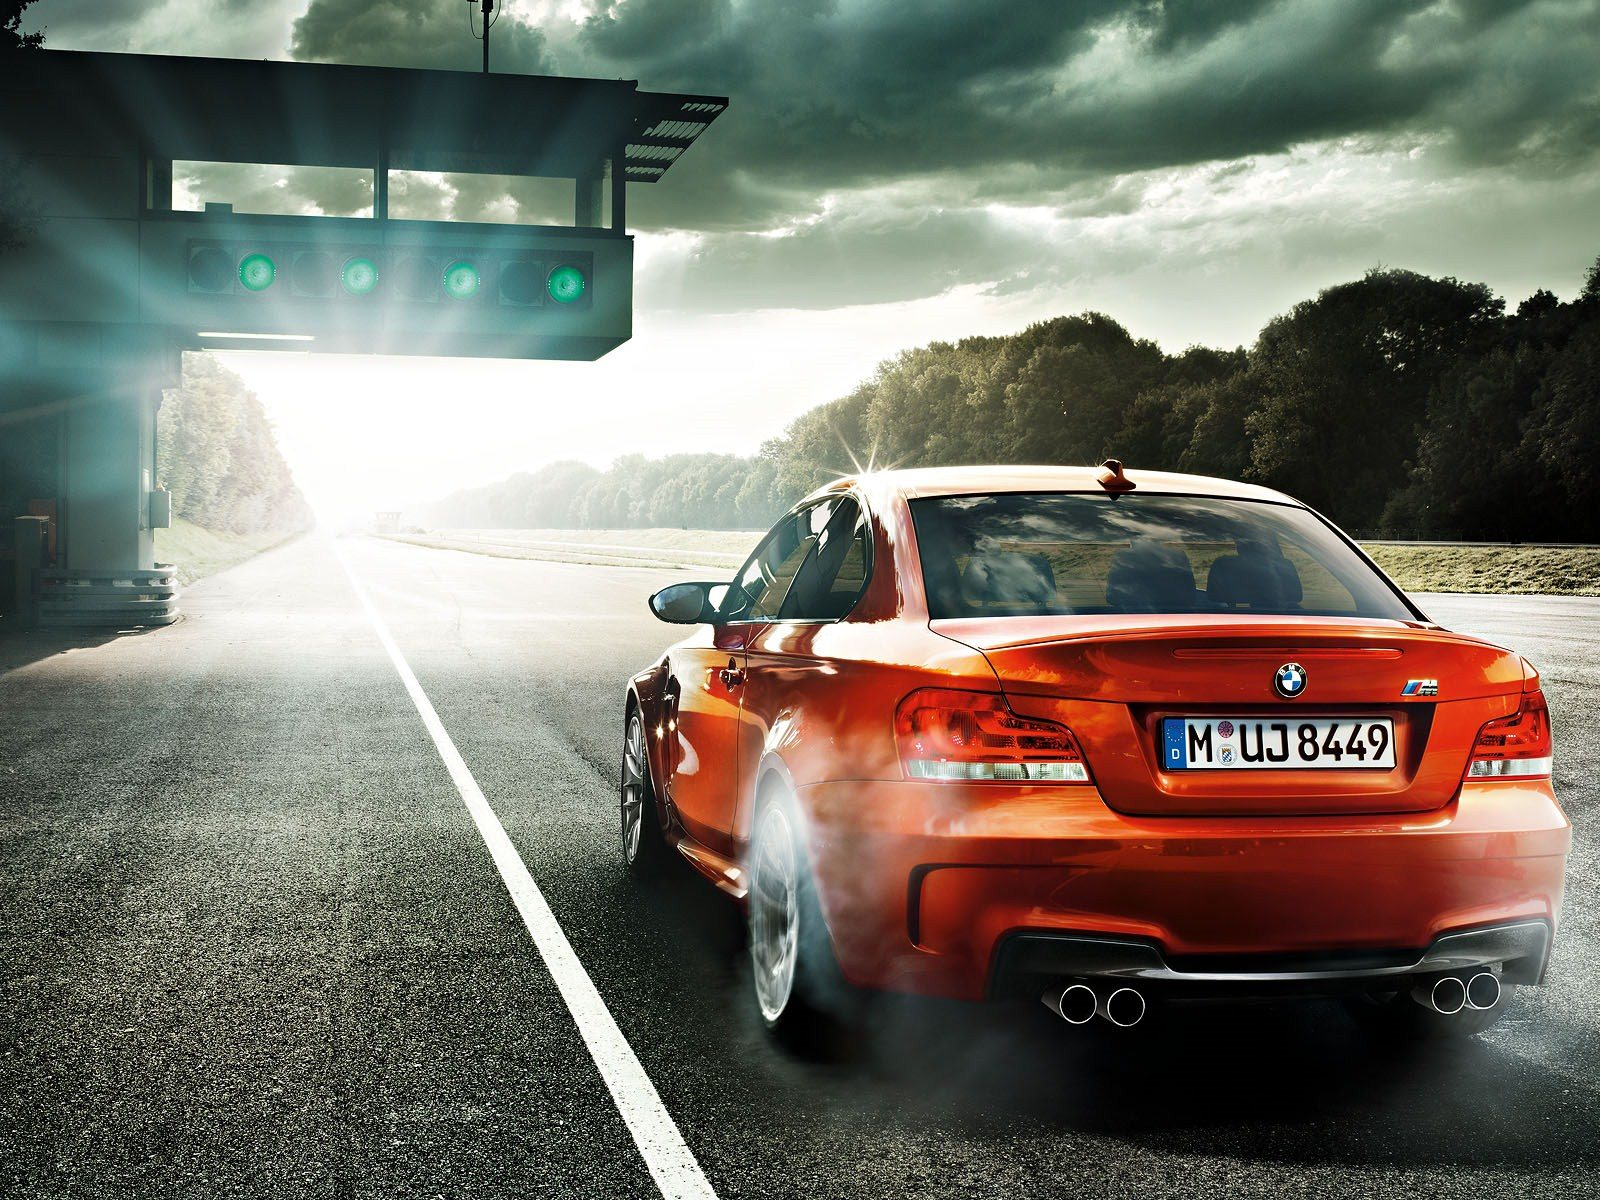 Stunning BMW 1M Coupe Widescreen Wallpapers Collection   My Car Portal 1600x1200